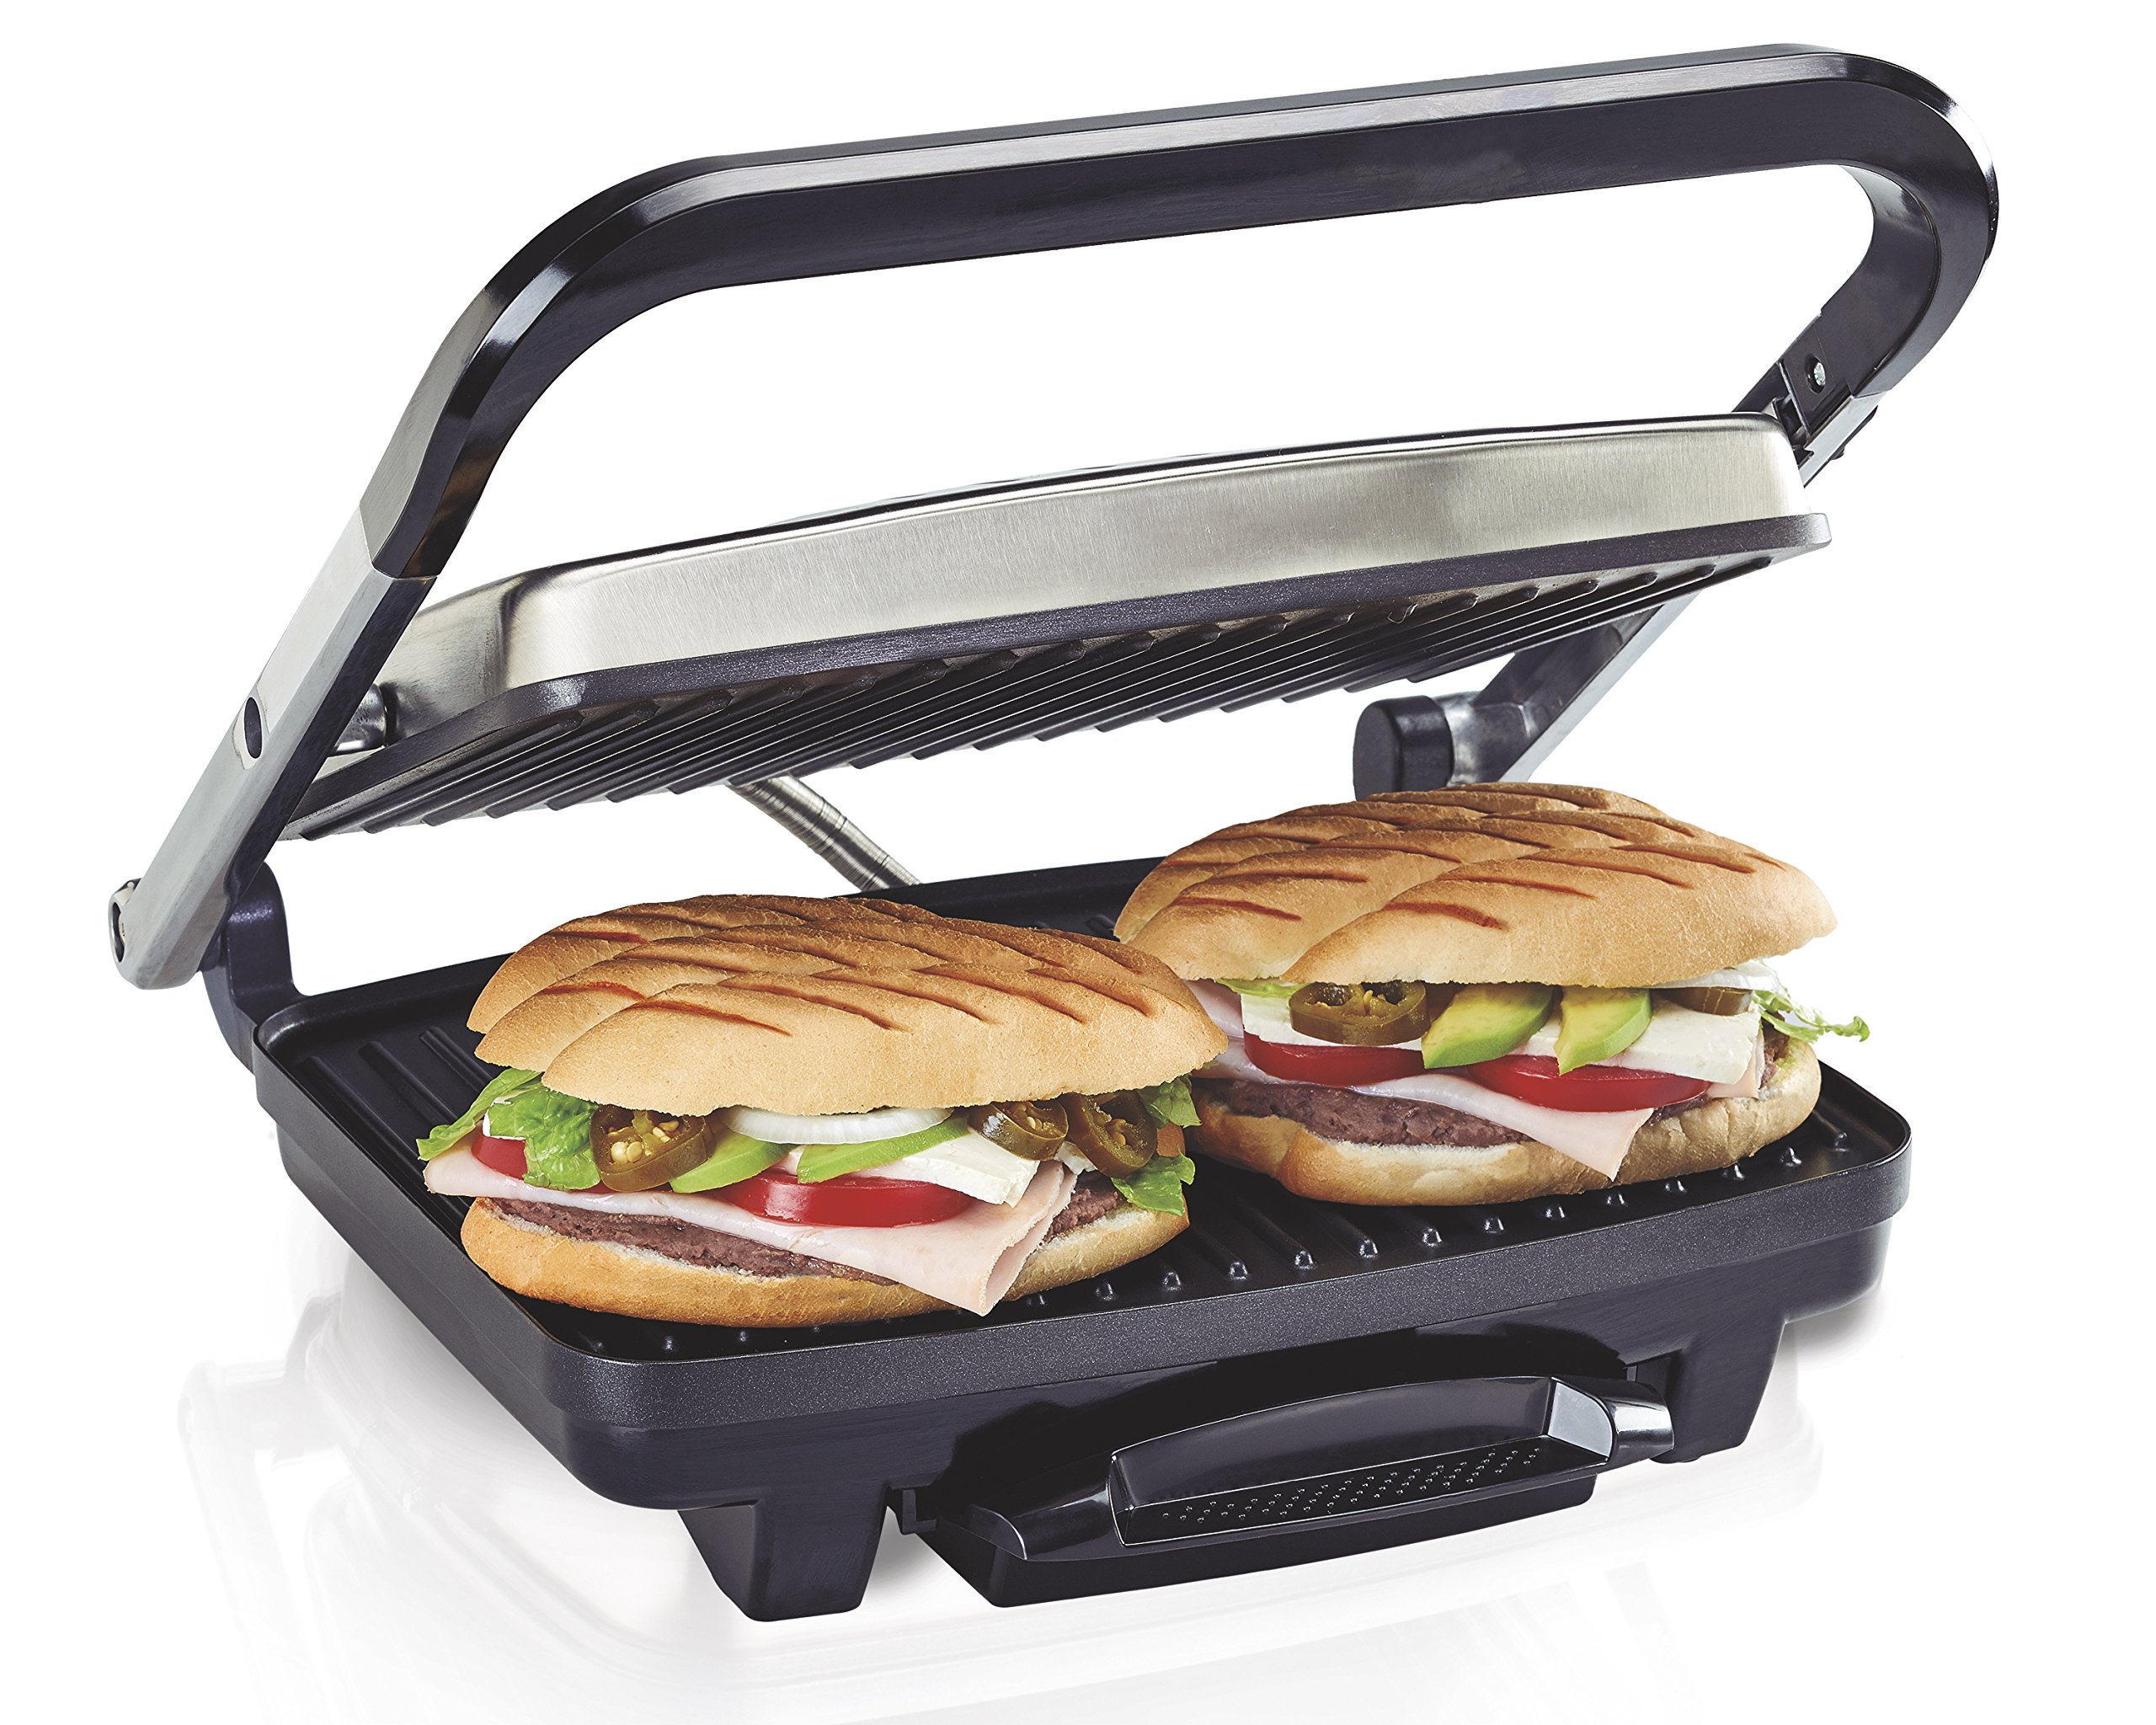 Hamilton Beach (25410) Panini Press, Sandwich Maker & Grill, Electric, 95'' Cooking Surface, Stainless Steel